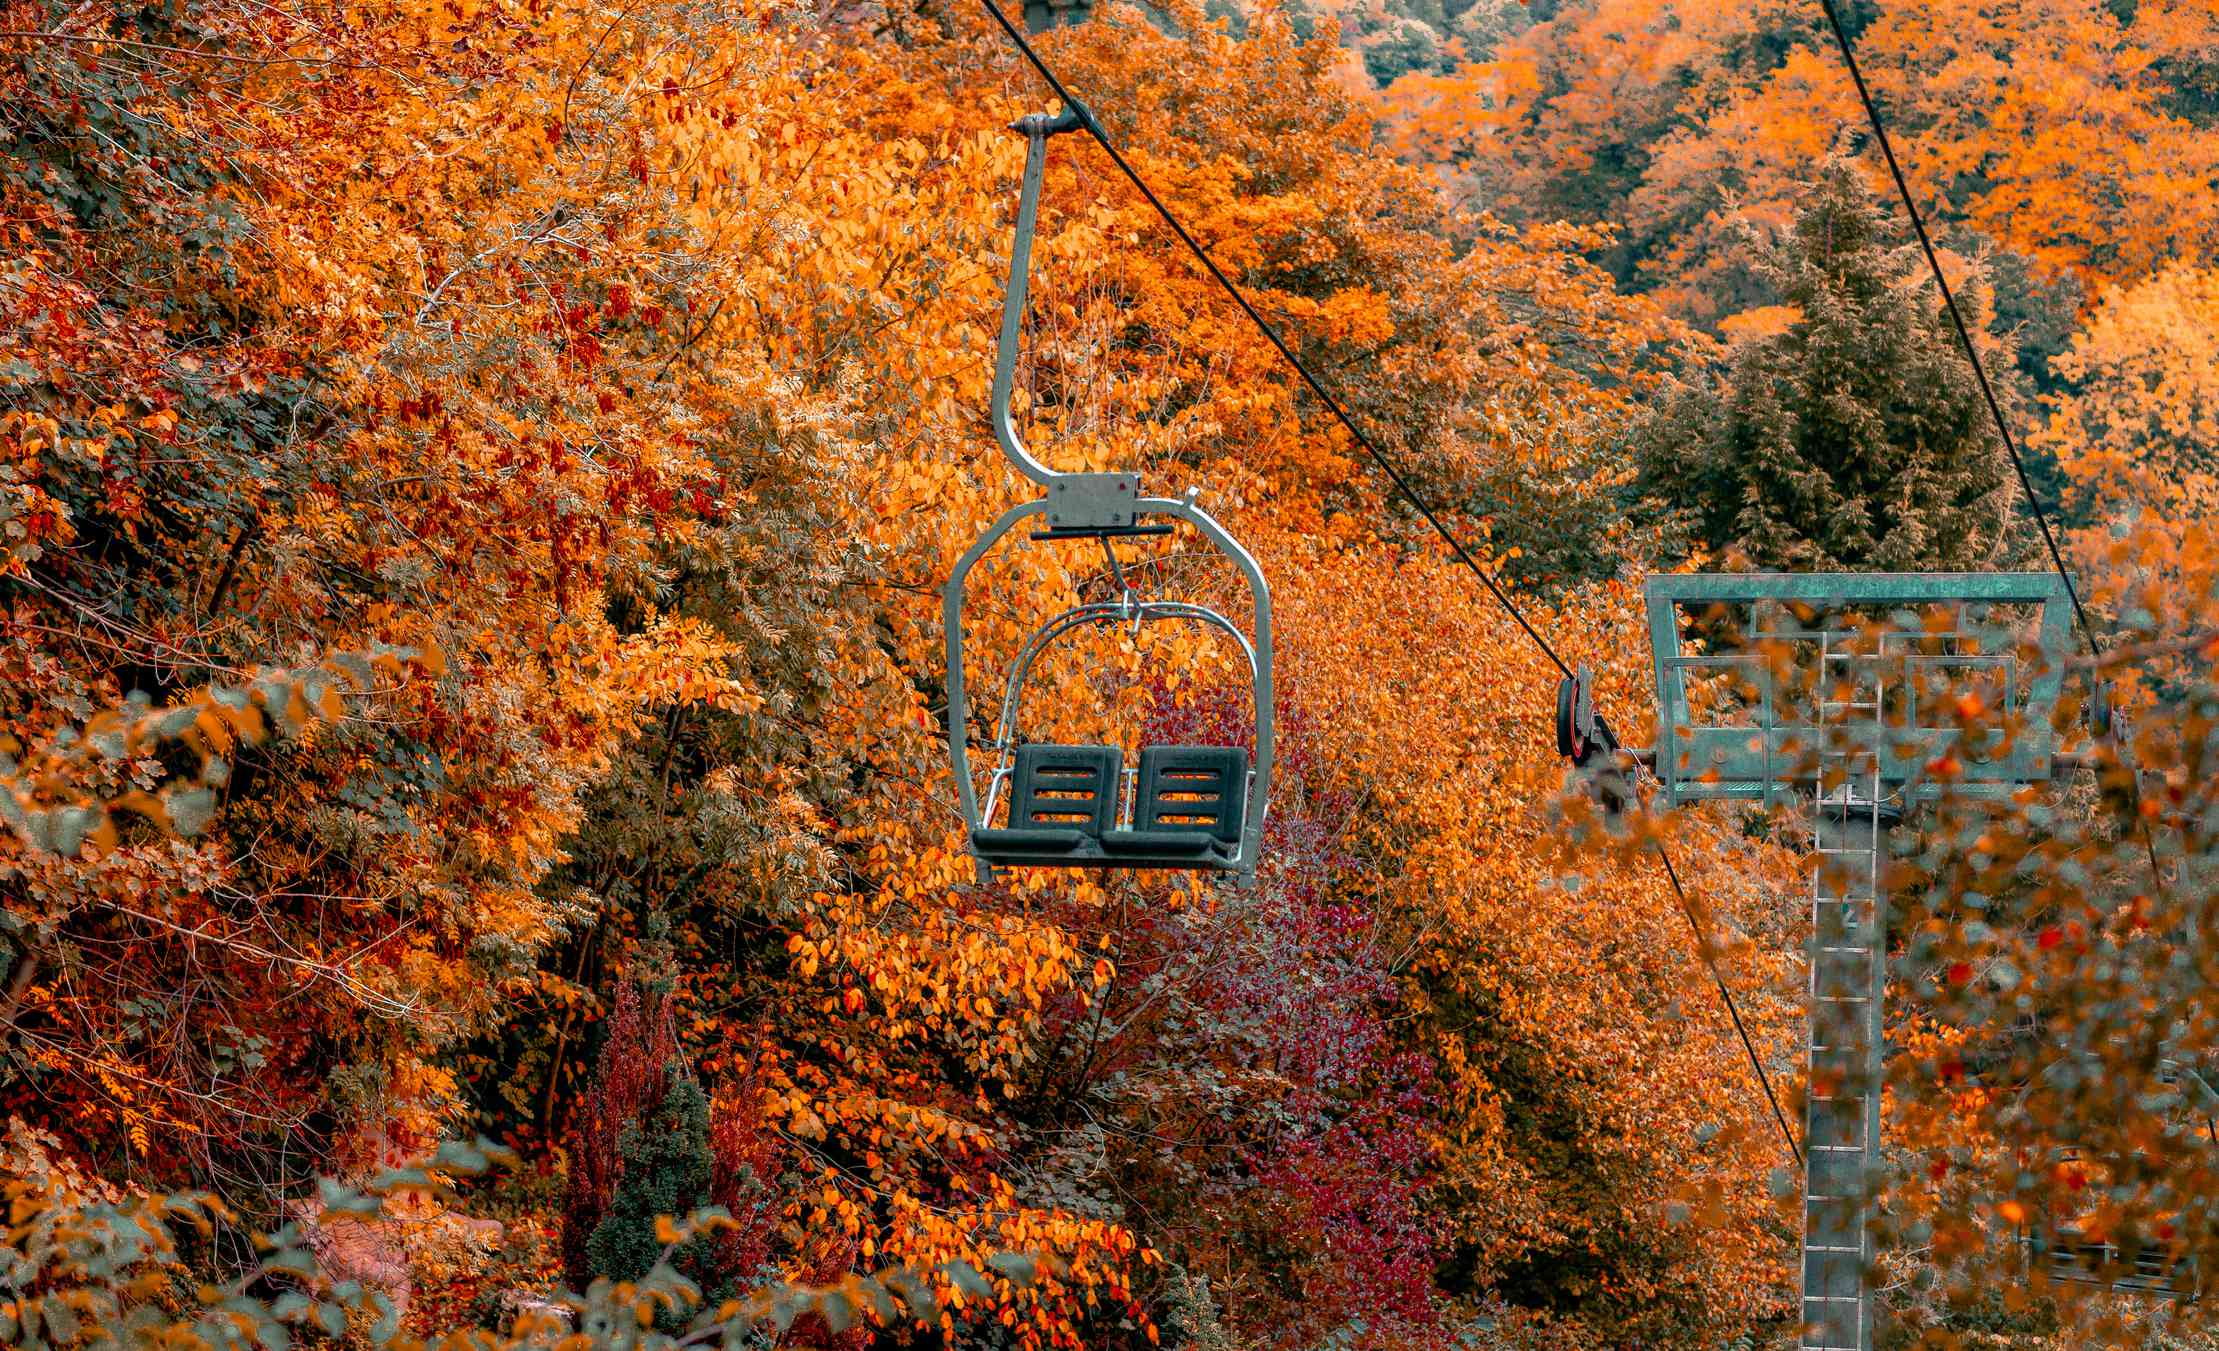 Chairlift in fall